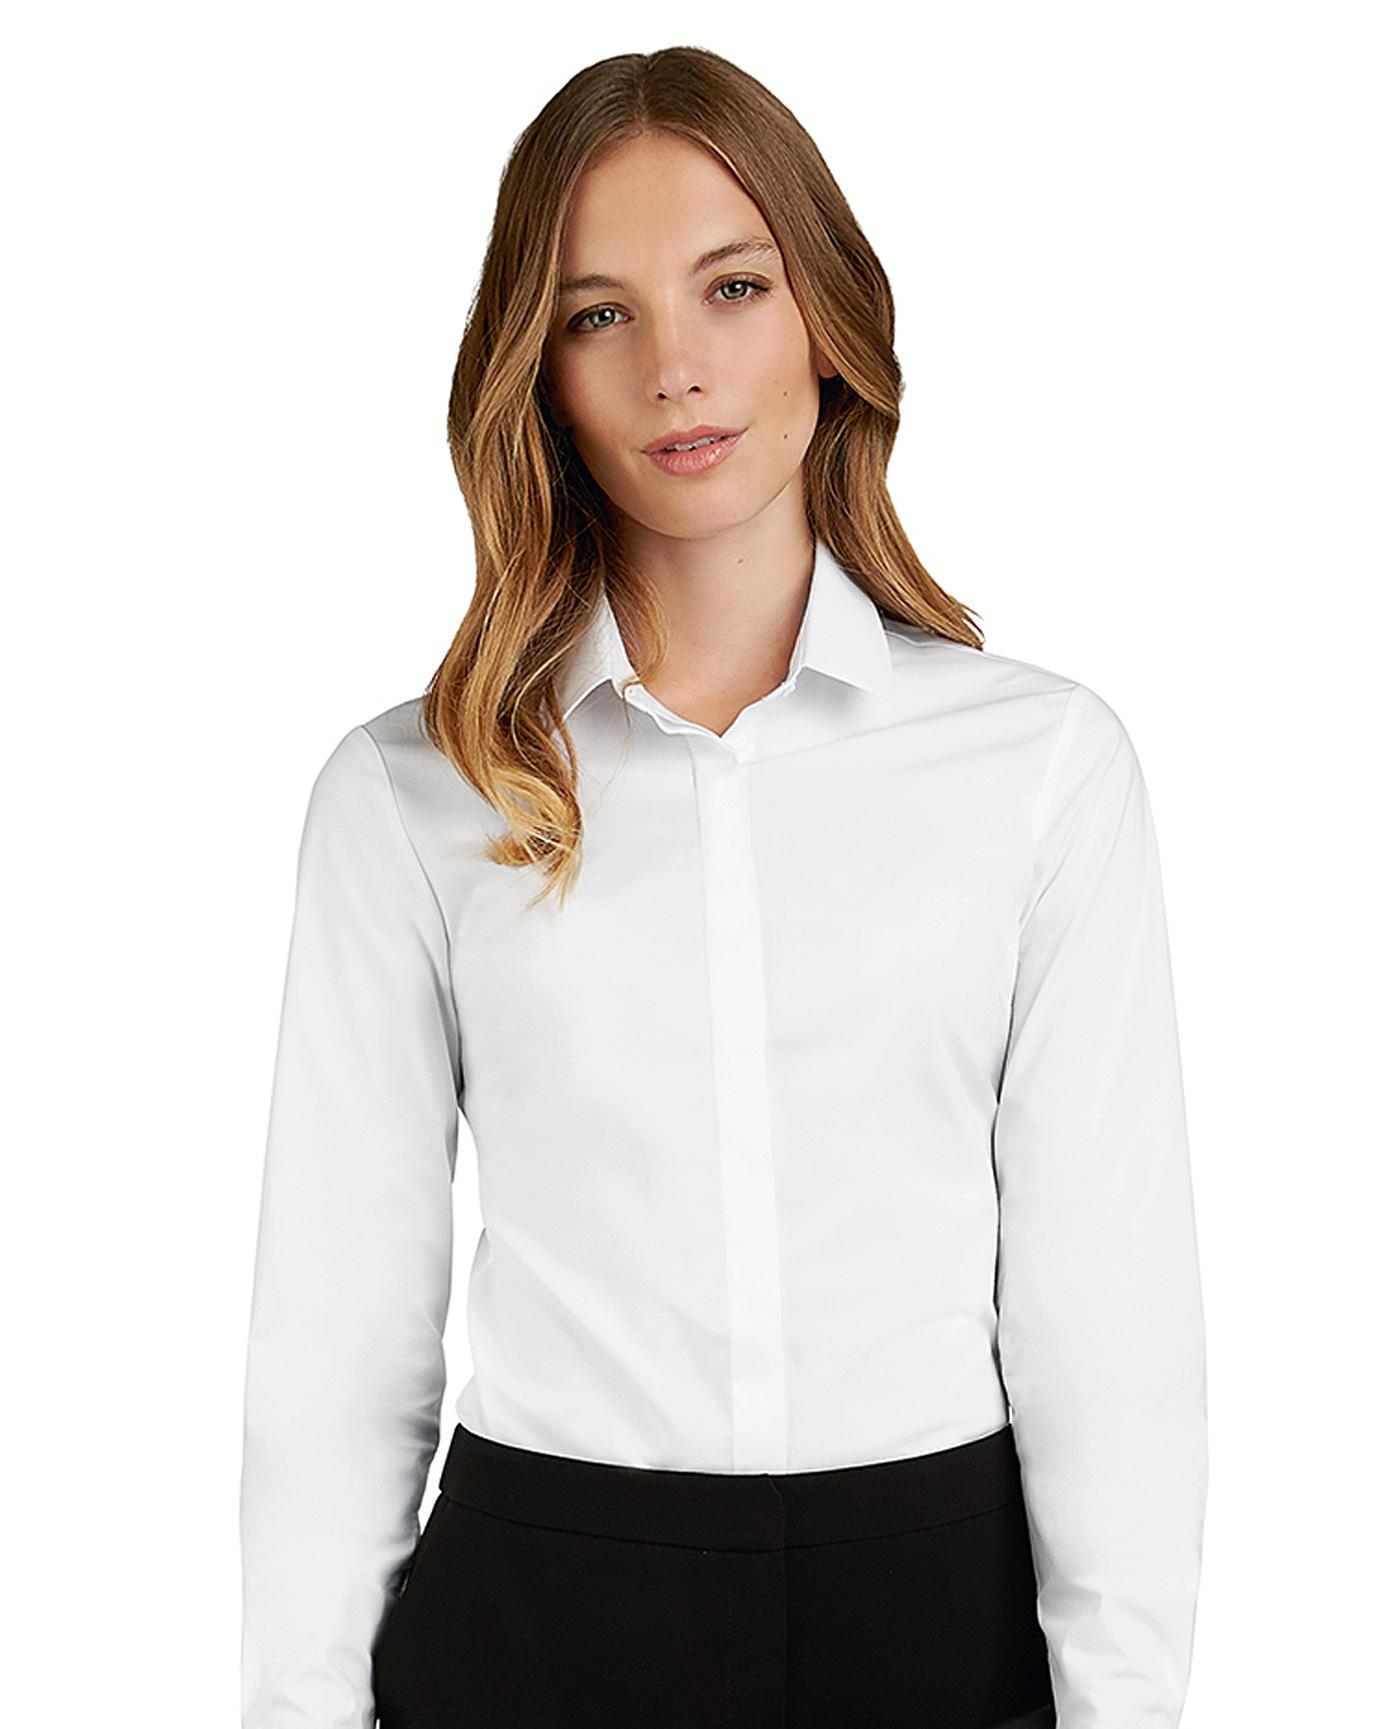 Fitted White Stretch Shirt Reviews Tm Lewin Reviews Feefo